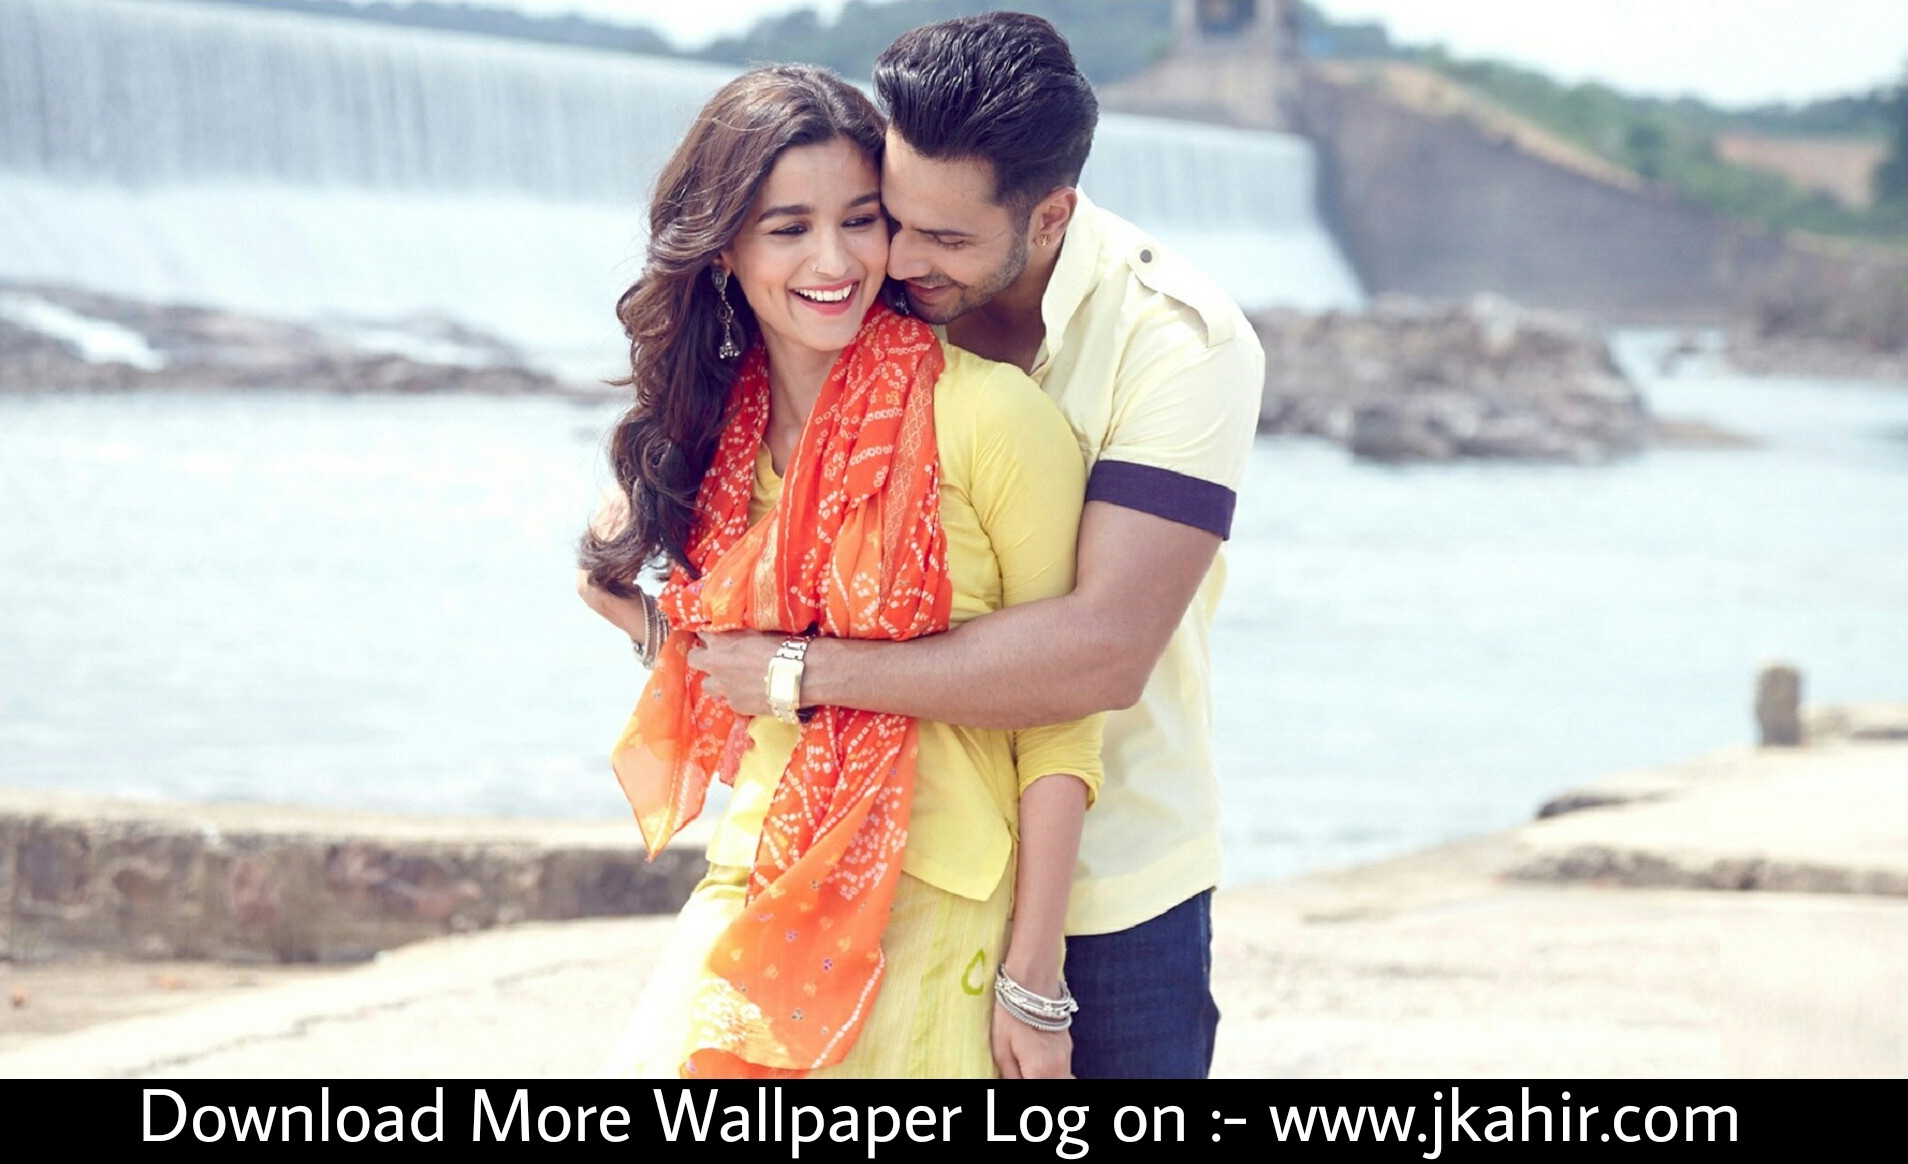 http://www.jkahir.com/wp-content/uploads/2017/05/Alia-Bhatt-And-Varun-Dhawan-Hugs-Romantic-Looks.jpg